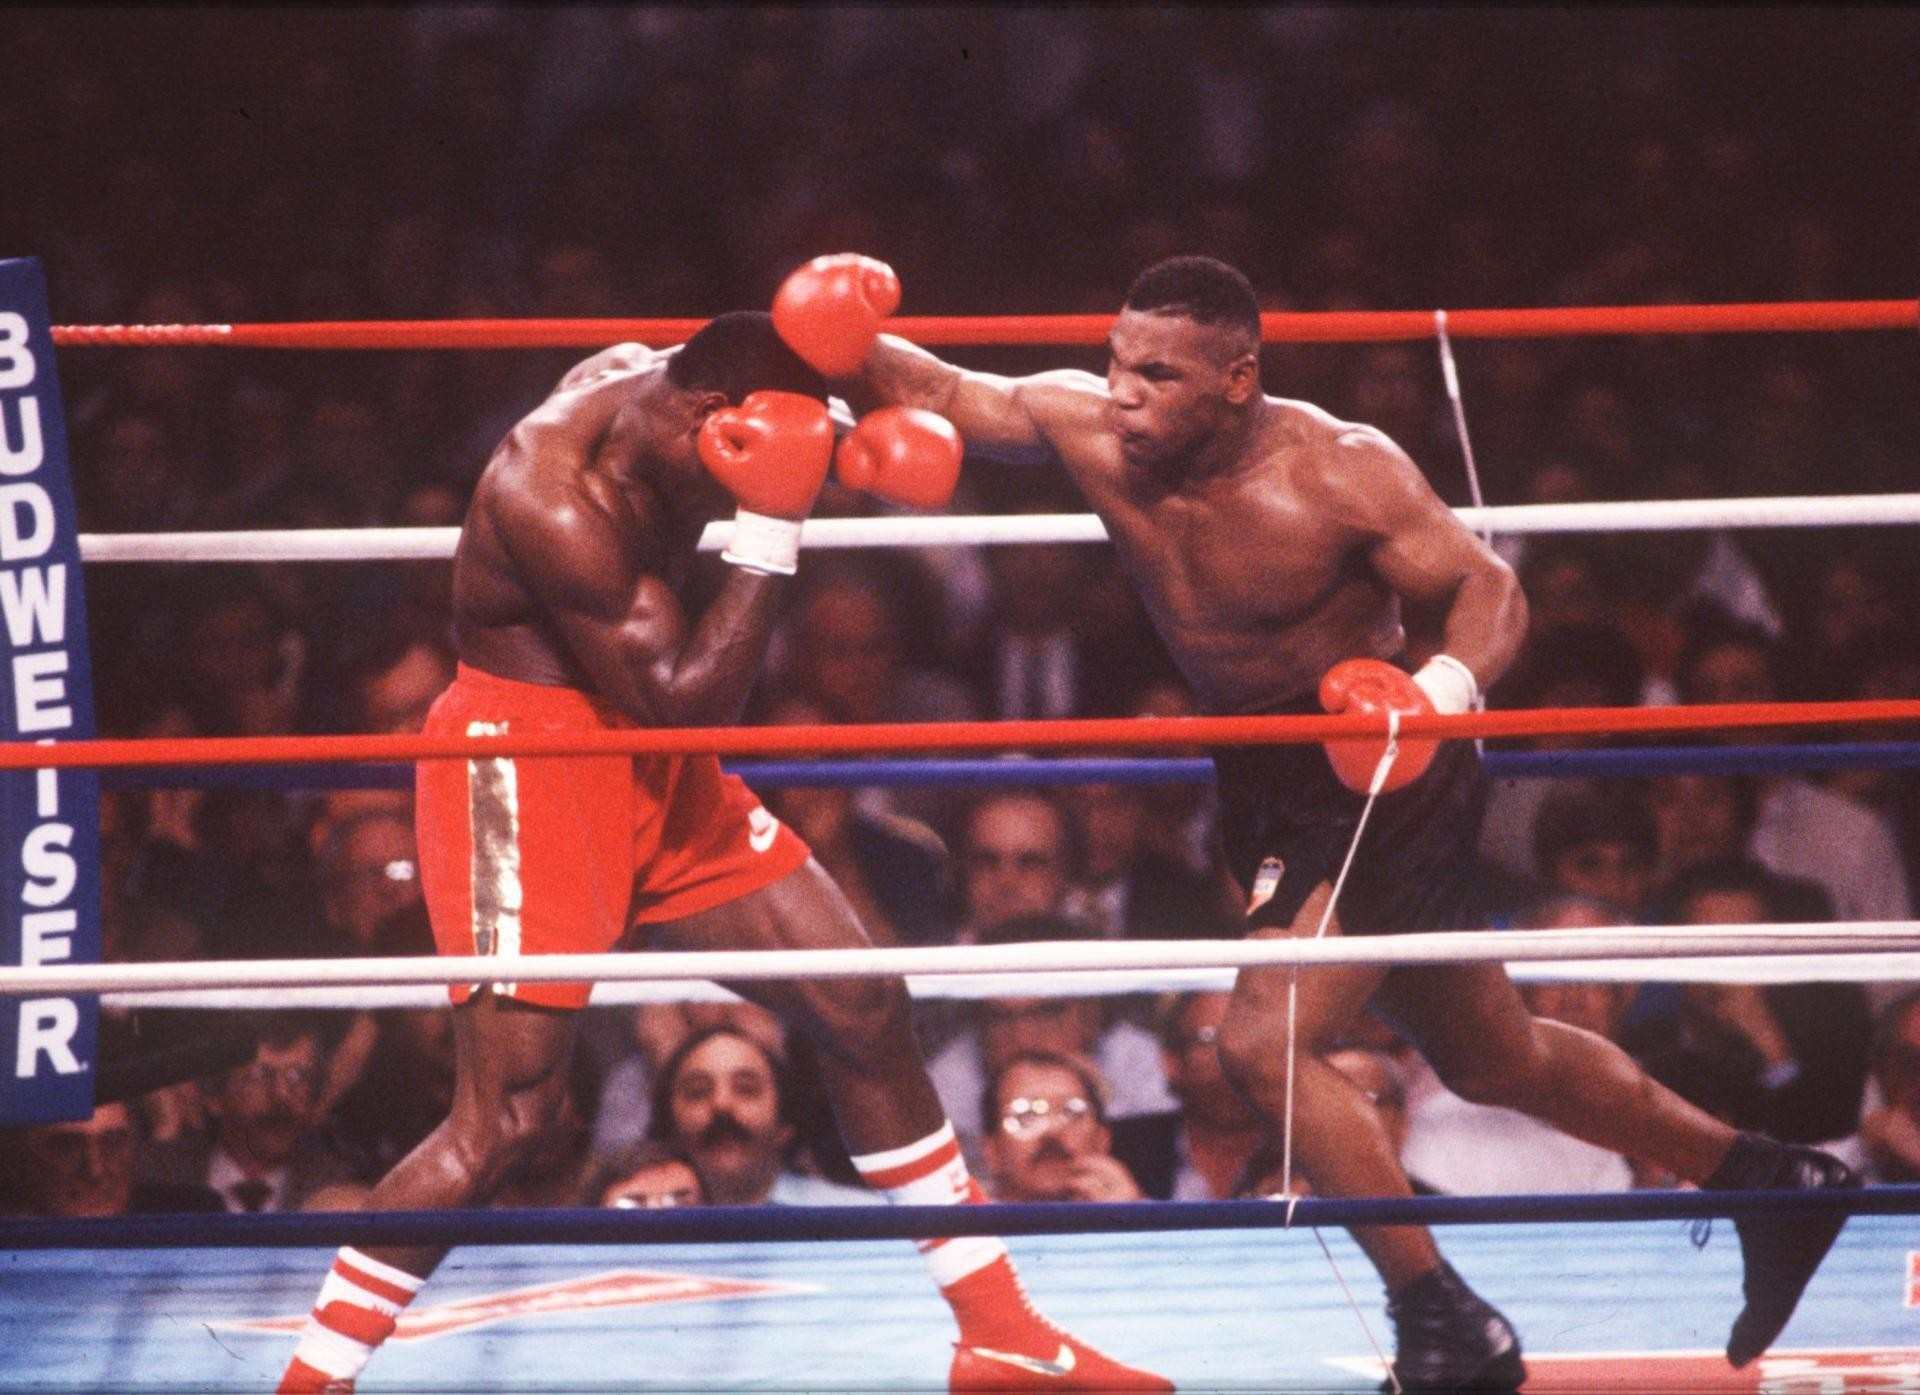 Famous boxer Mike tyson in the ring wallpapers and images .